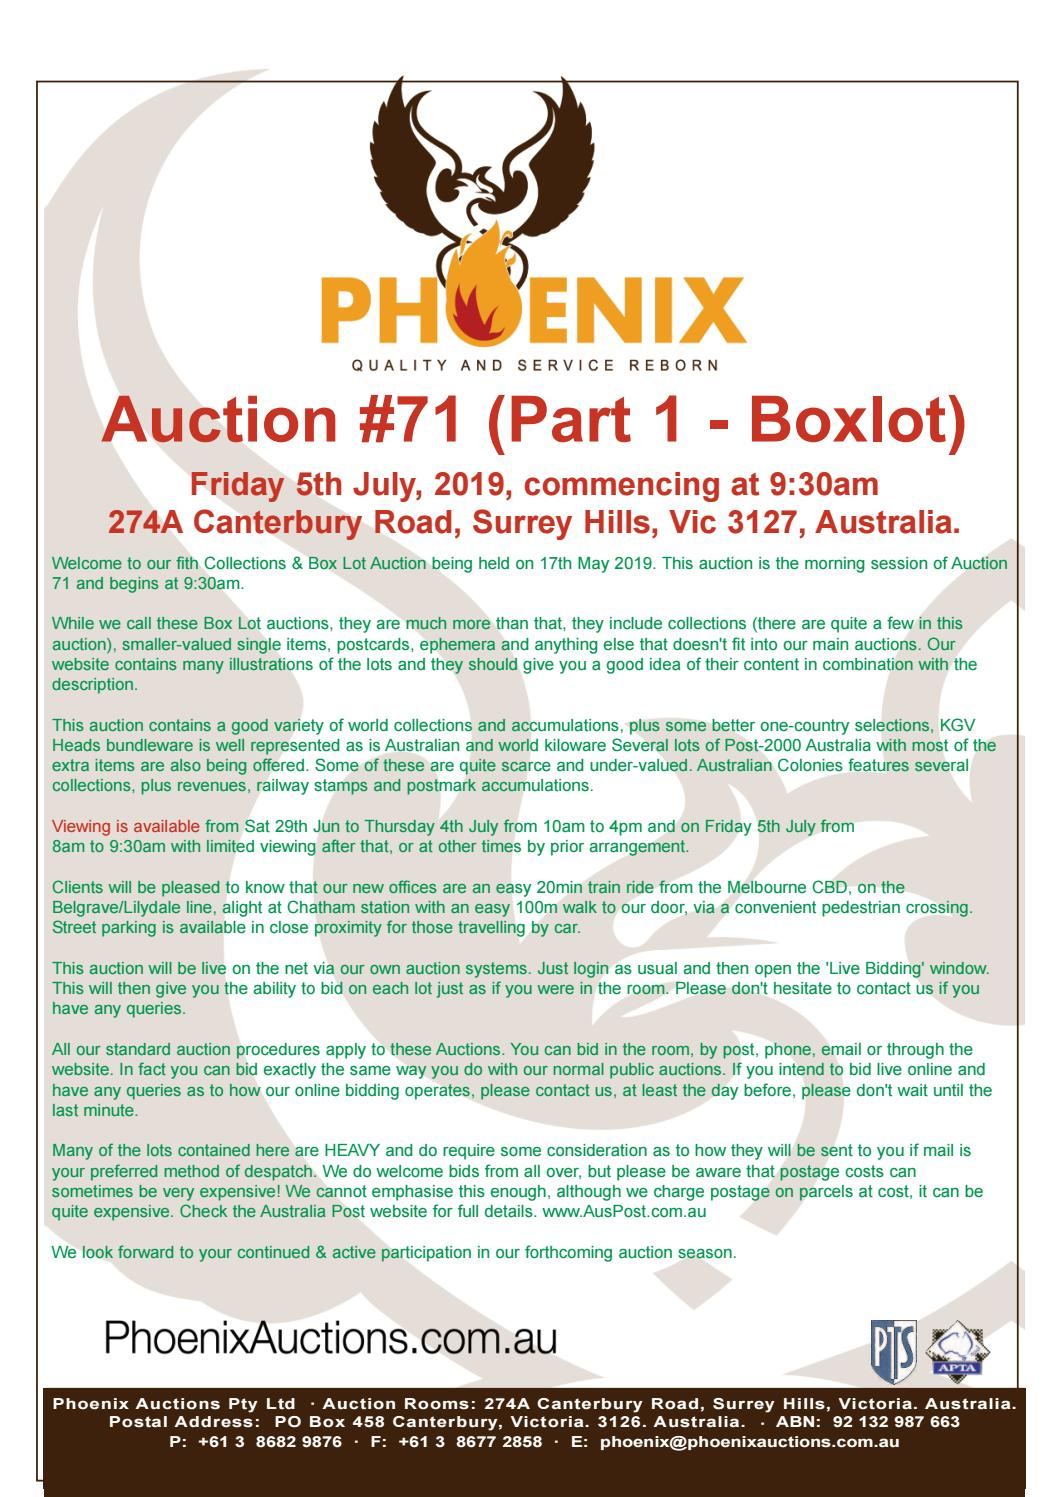 Phoenix Auctions #71 (Part 1 Boxlot) by Phoenix Auctions Pty